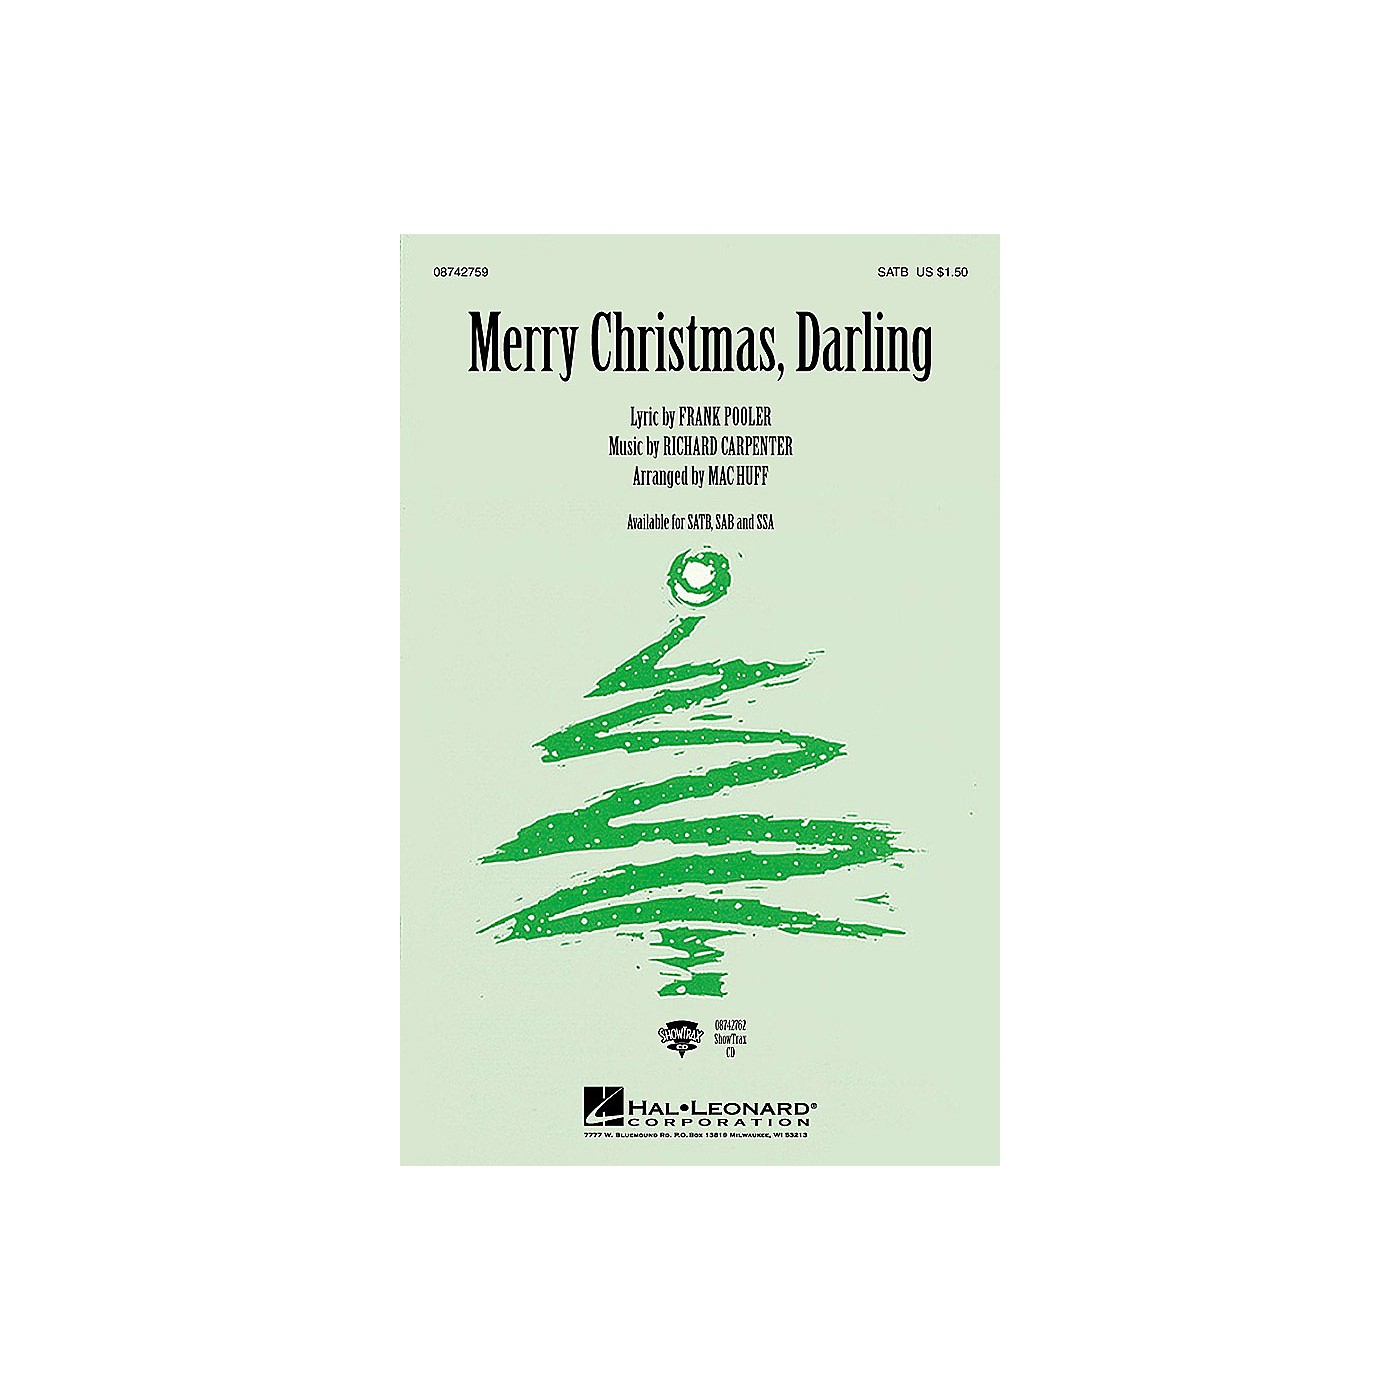 Hal Leonard Merry Christmas, Darling SATB by The Carpenters arranged by Mac Huff thumbnail